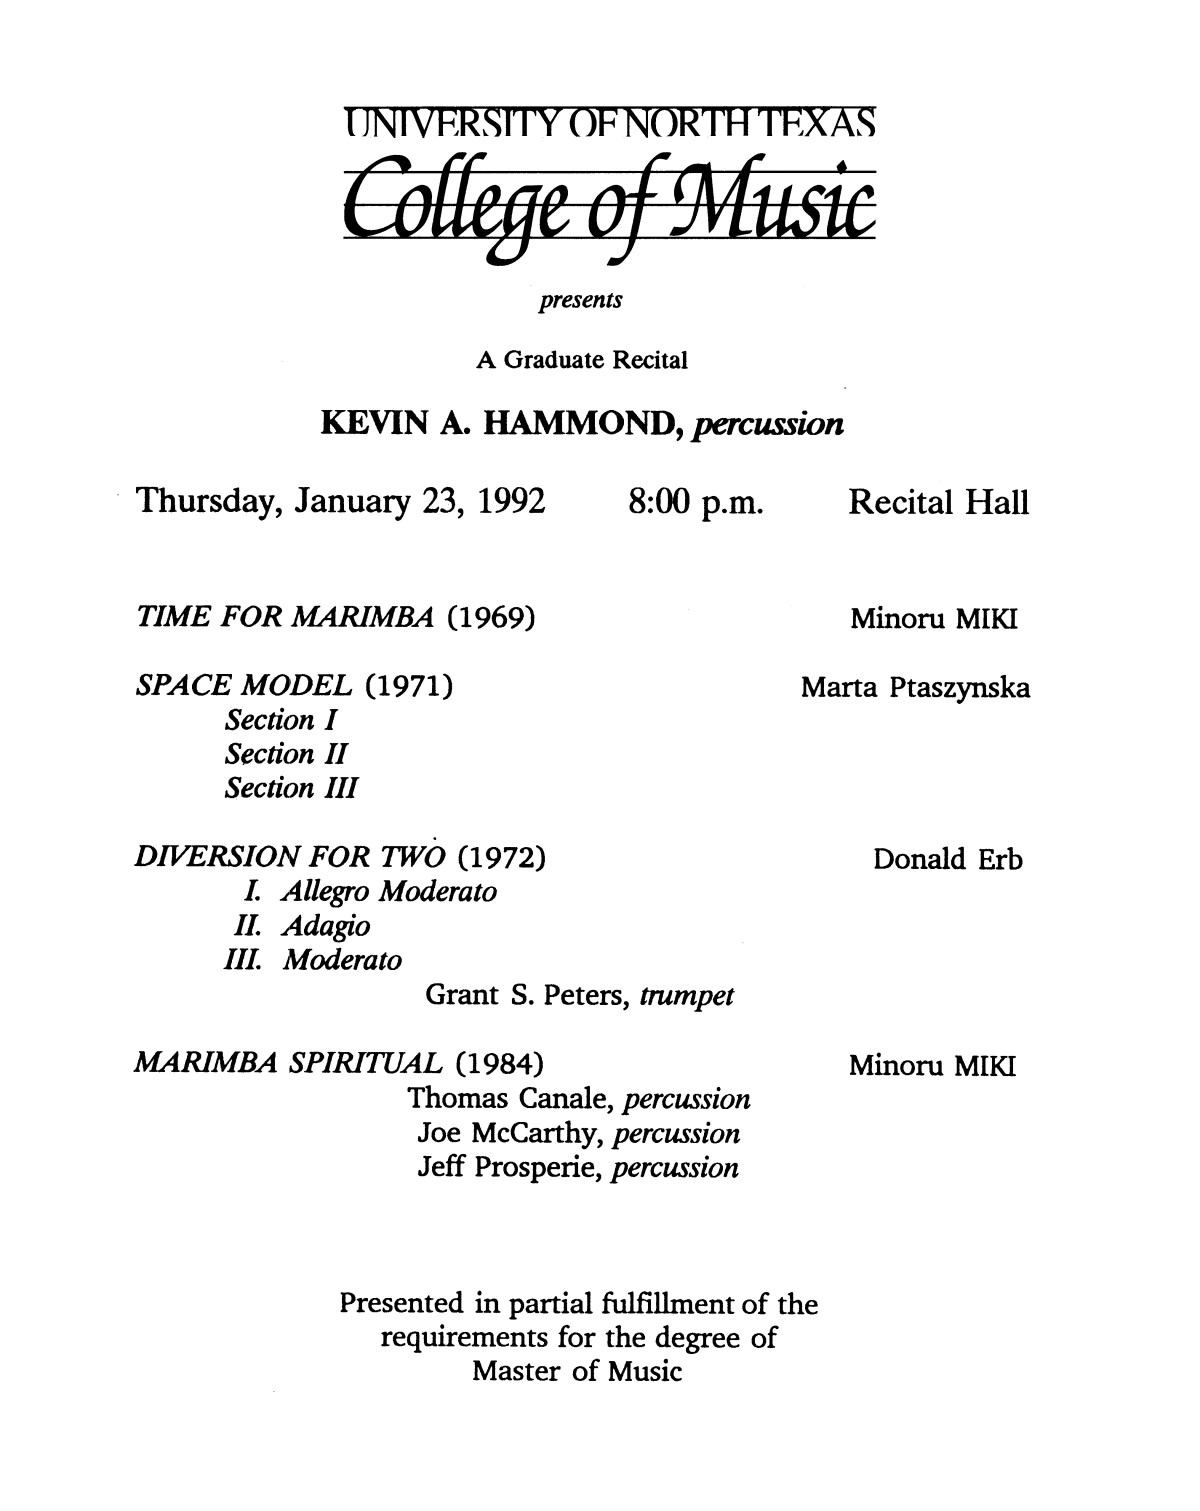 College of Music program book 1991-1992 Student Performances Vol. 2                                                                                                      [Sequence #]: 92 of 310